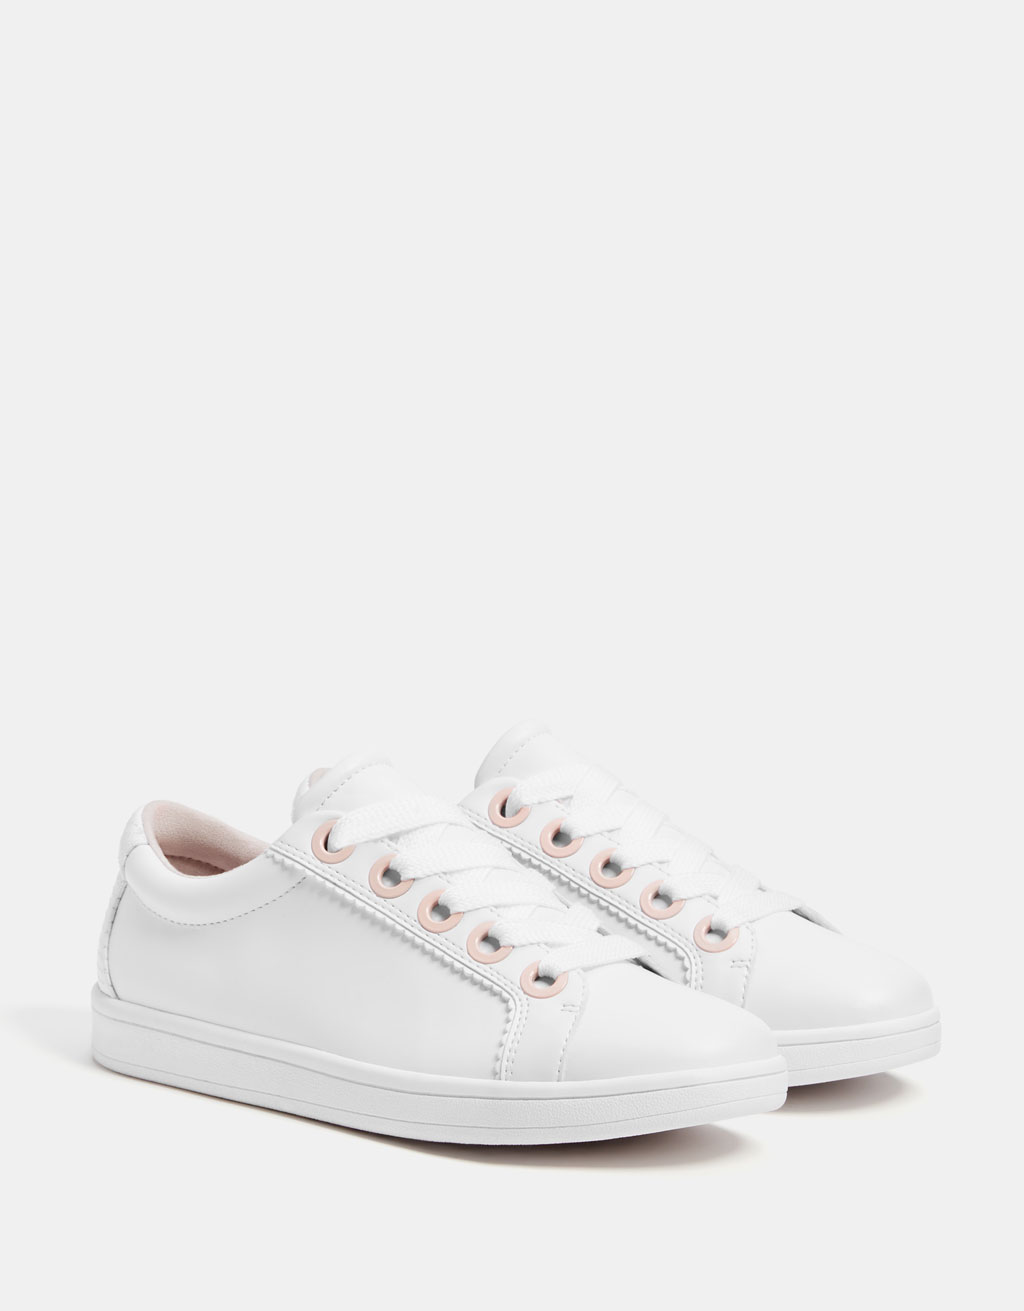 Scalloped edge white sneakers